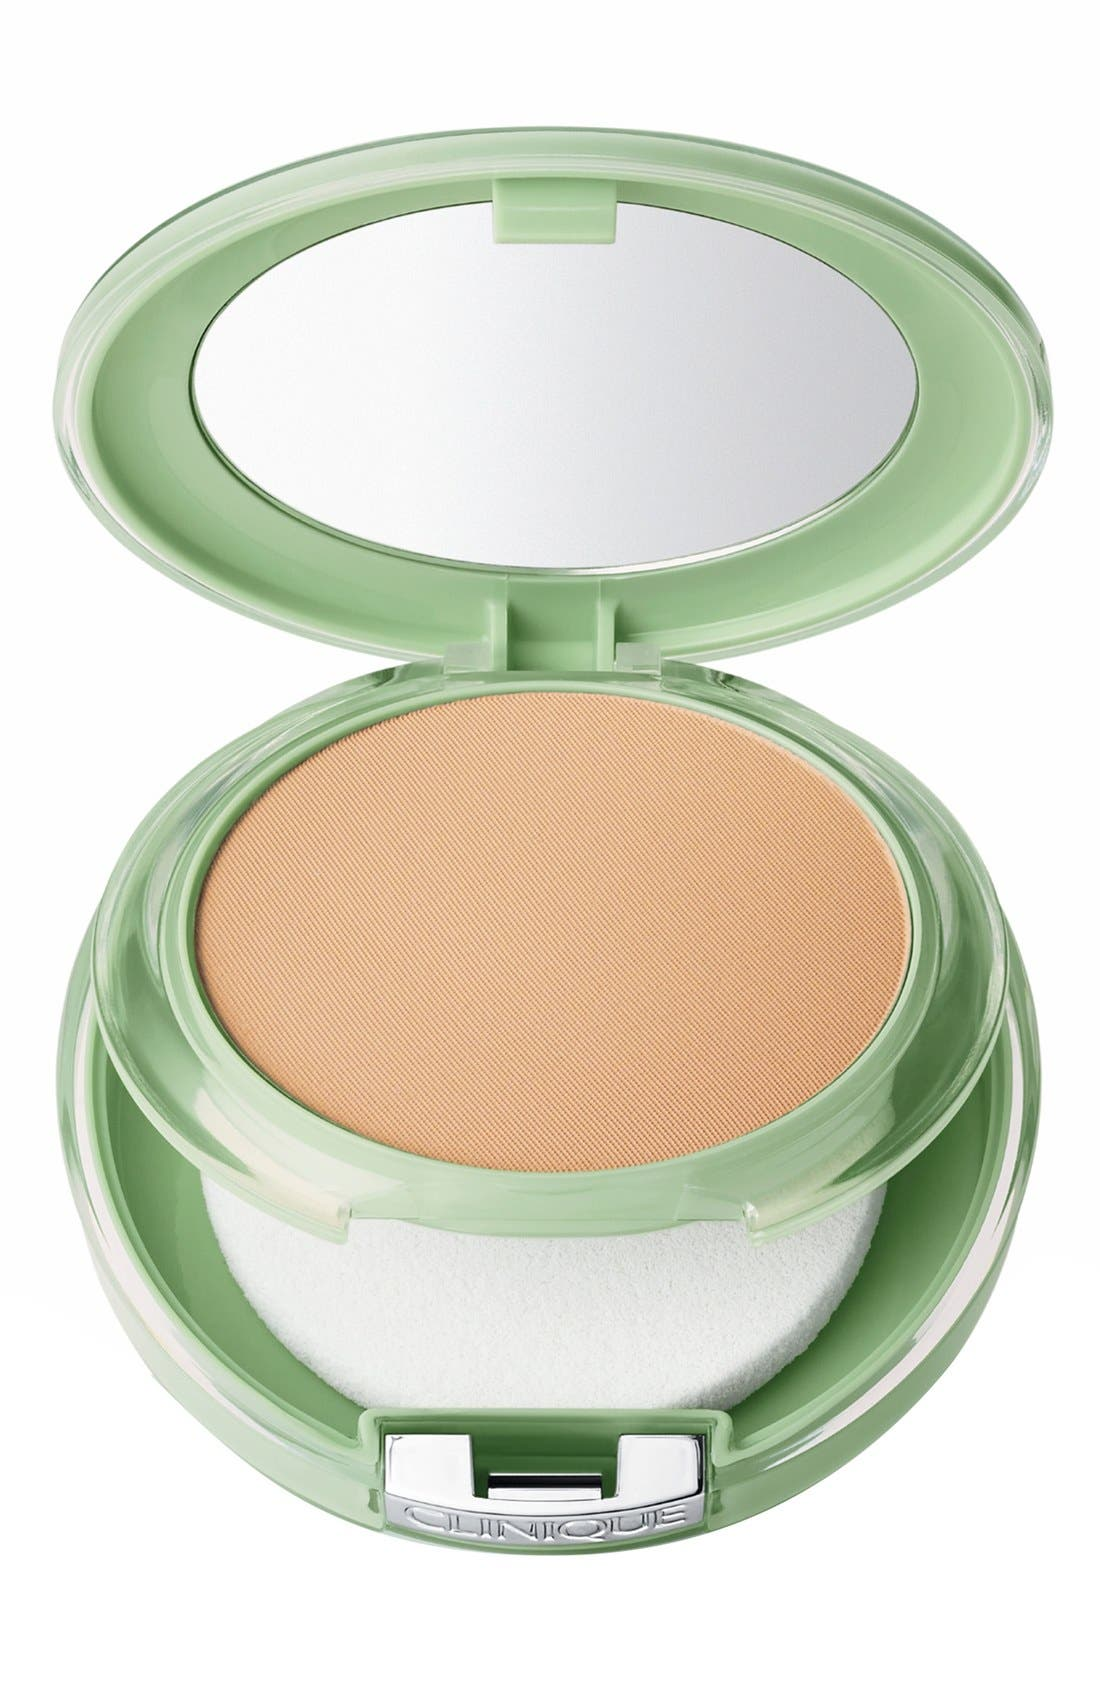 Clinique Perfectly Real Compact Makeup